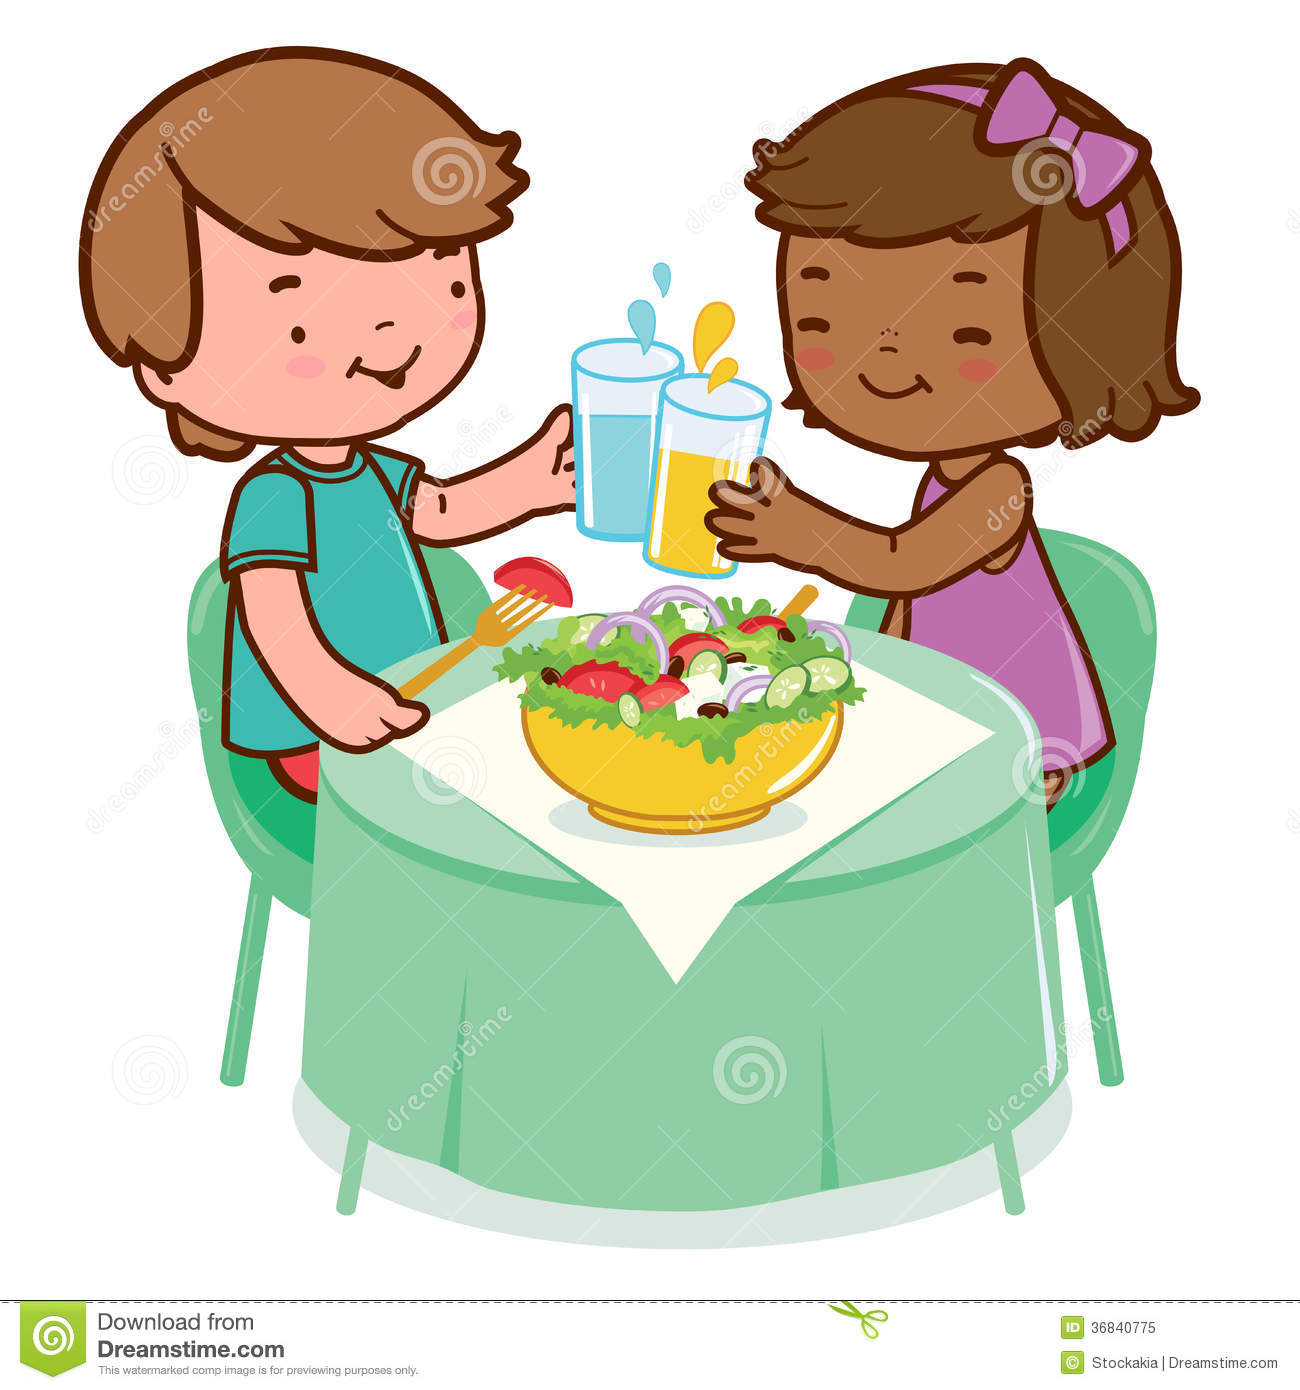 Children Eating Healthy Food Royalty Free Stock Photo